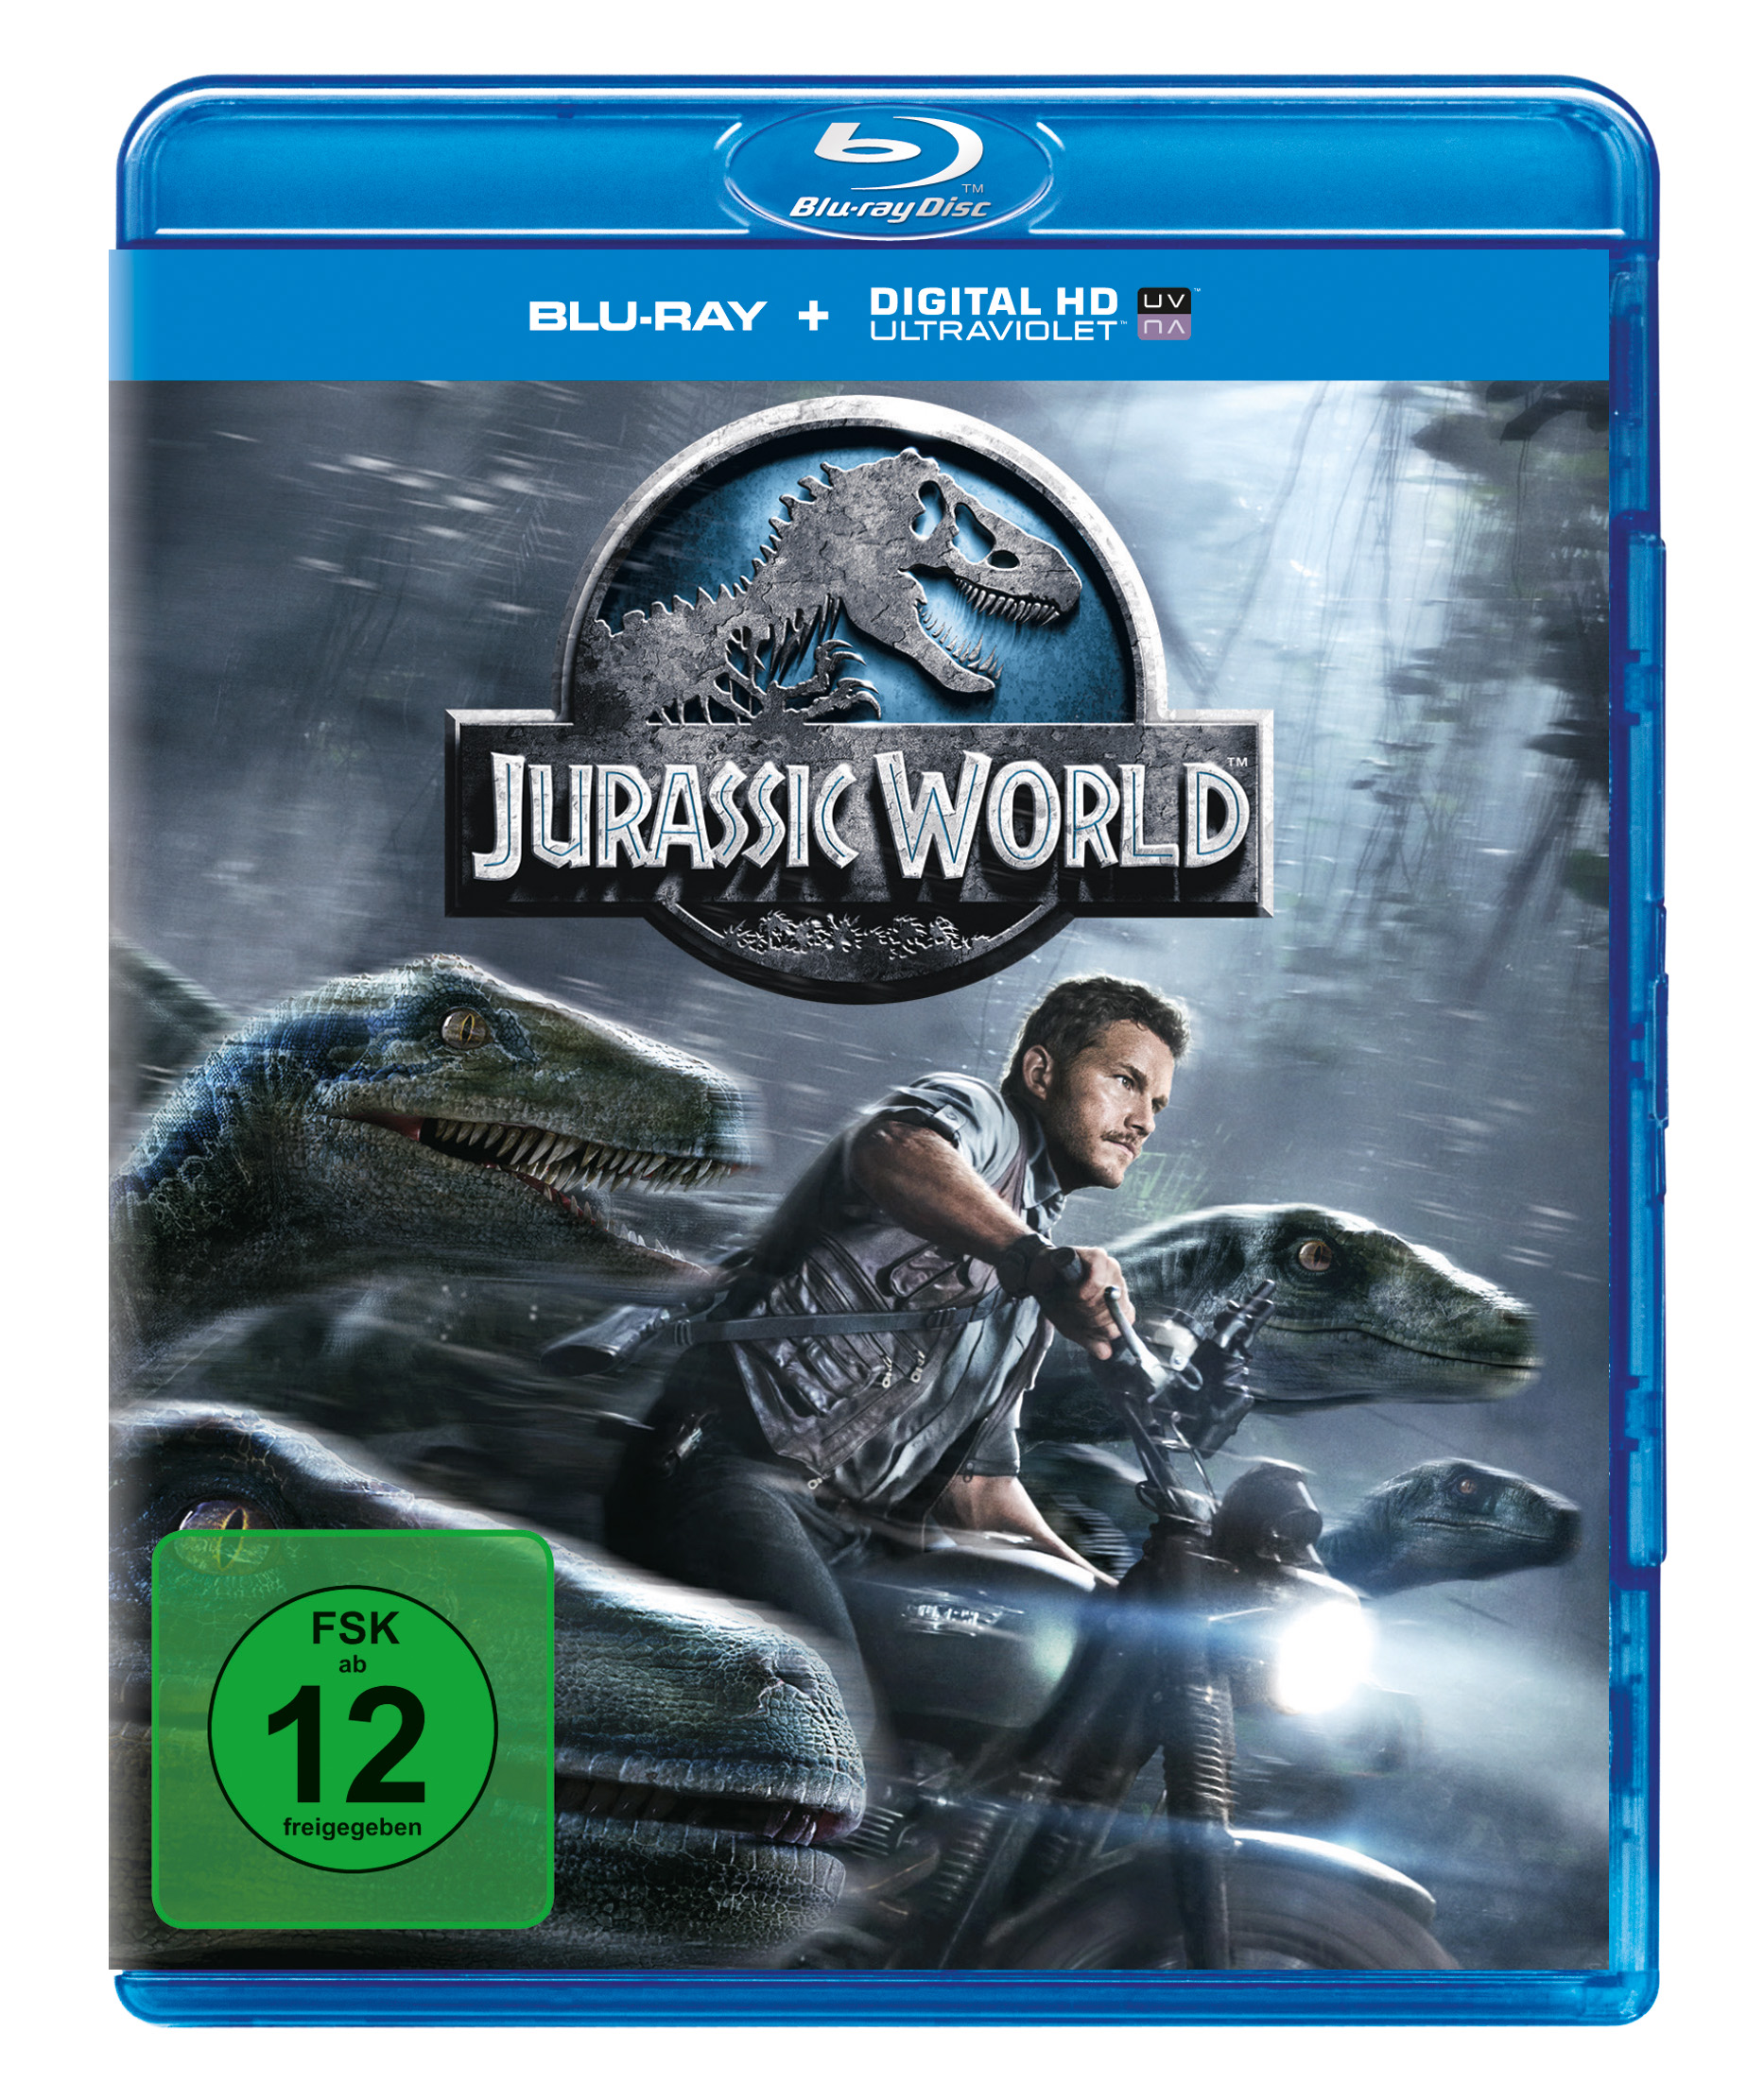 jurassic_world_2d_a02_xp_br